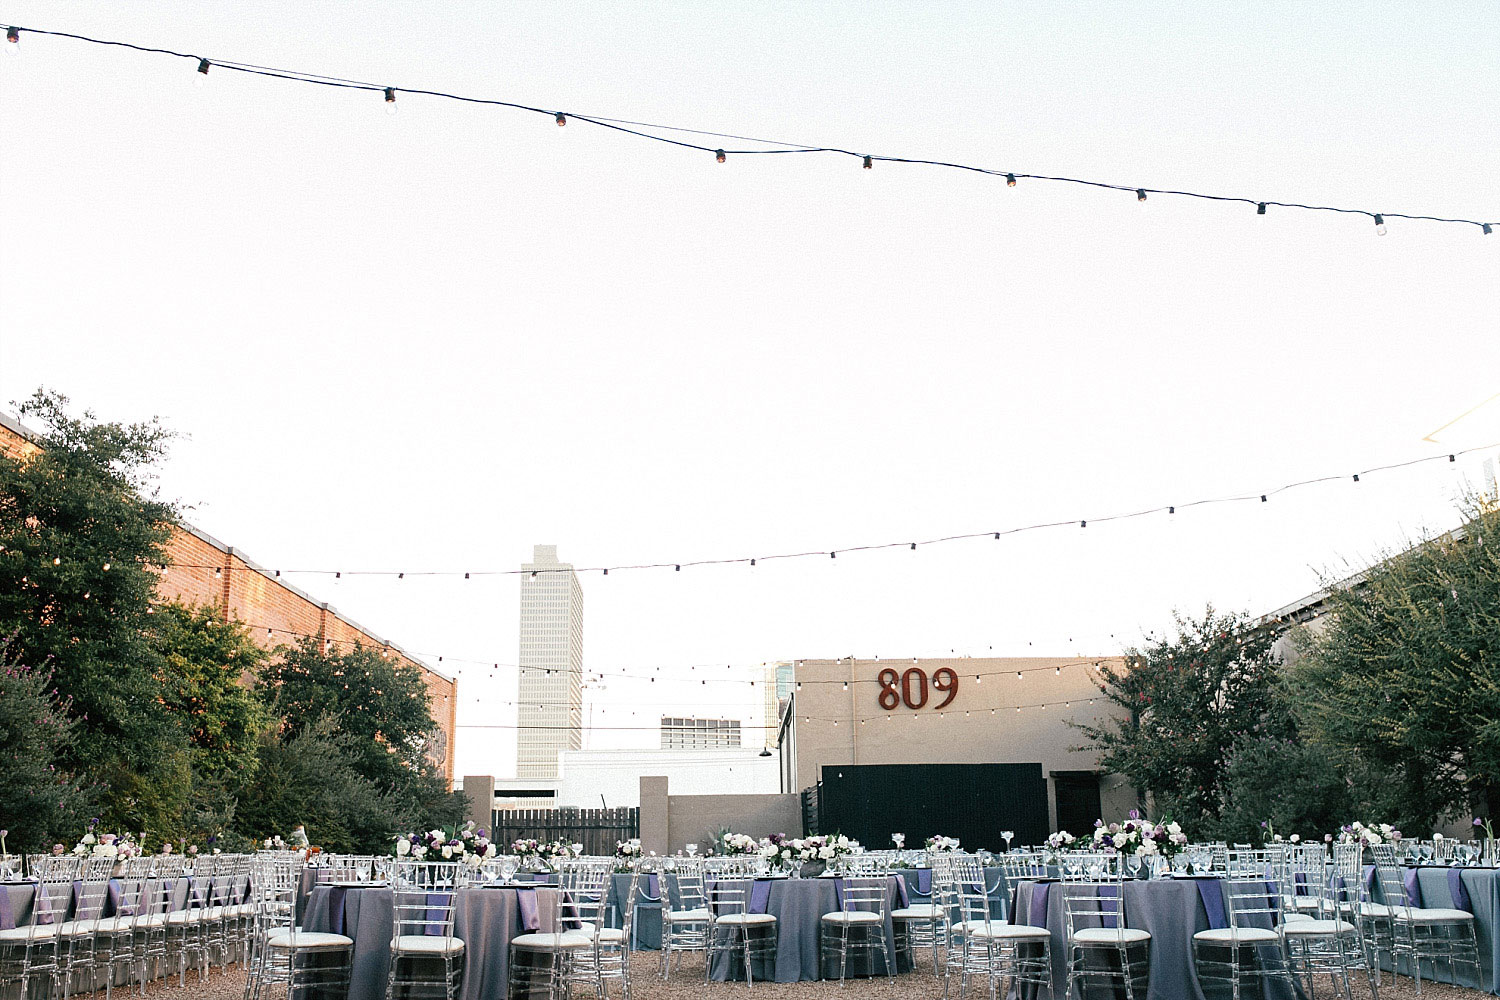 809 at Vickery wedding reception in courtyard